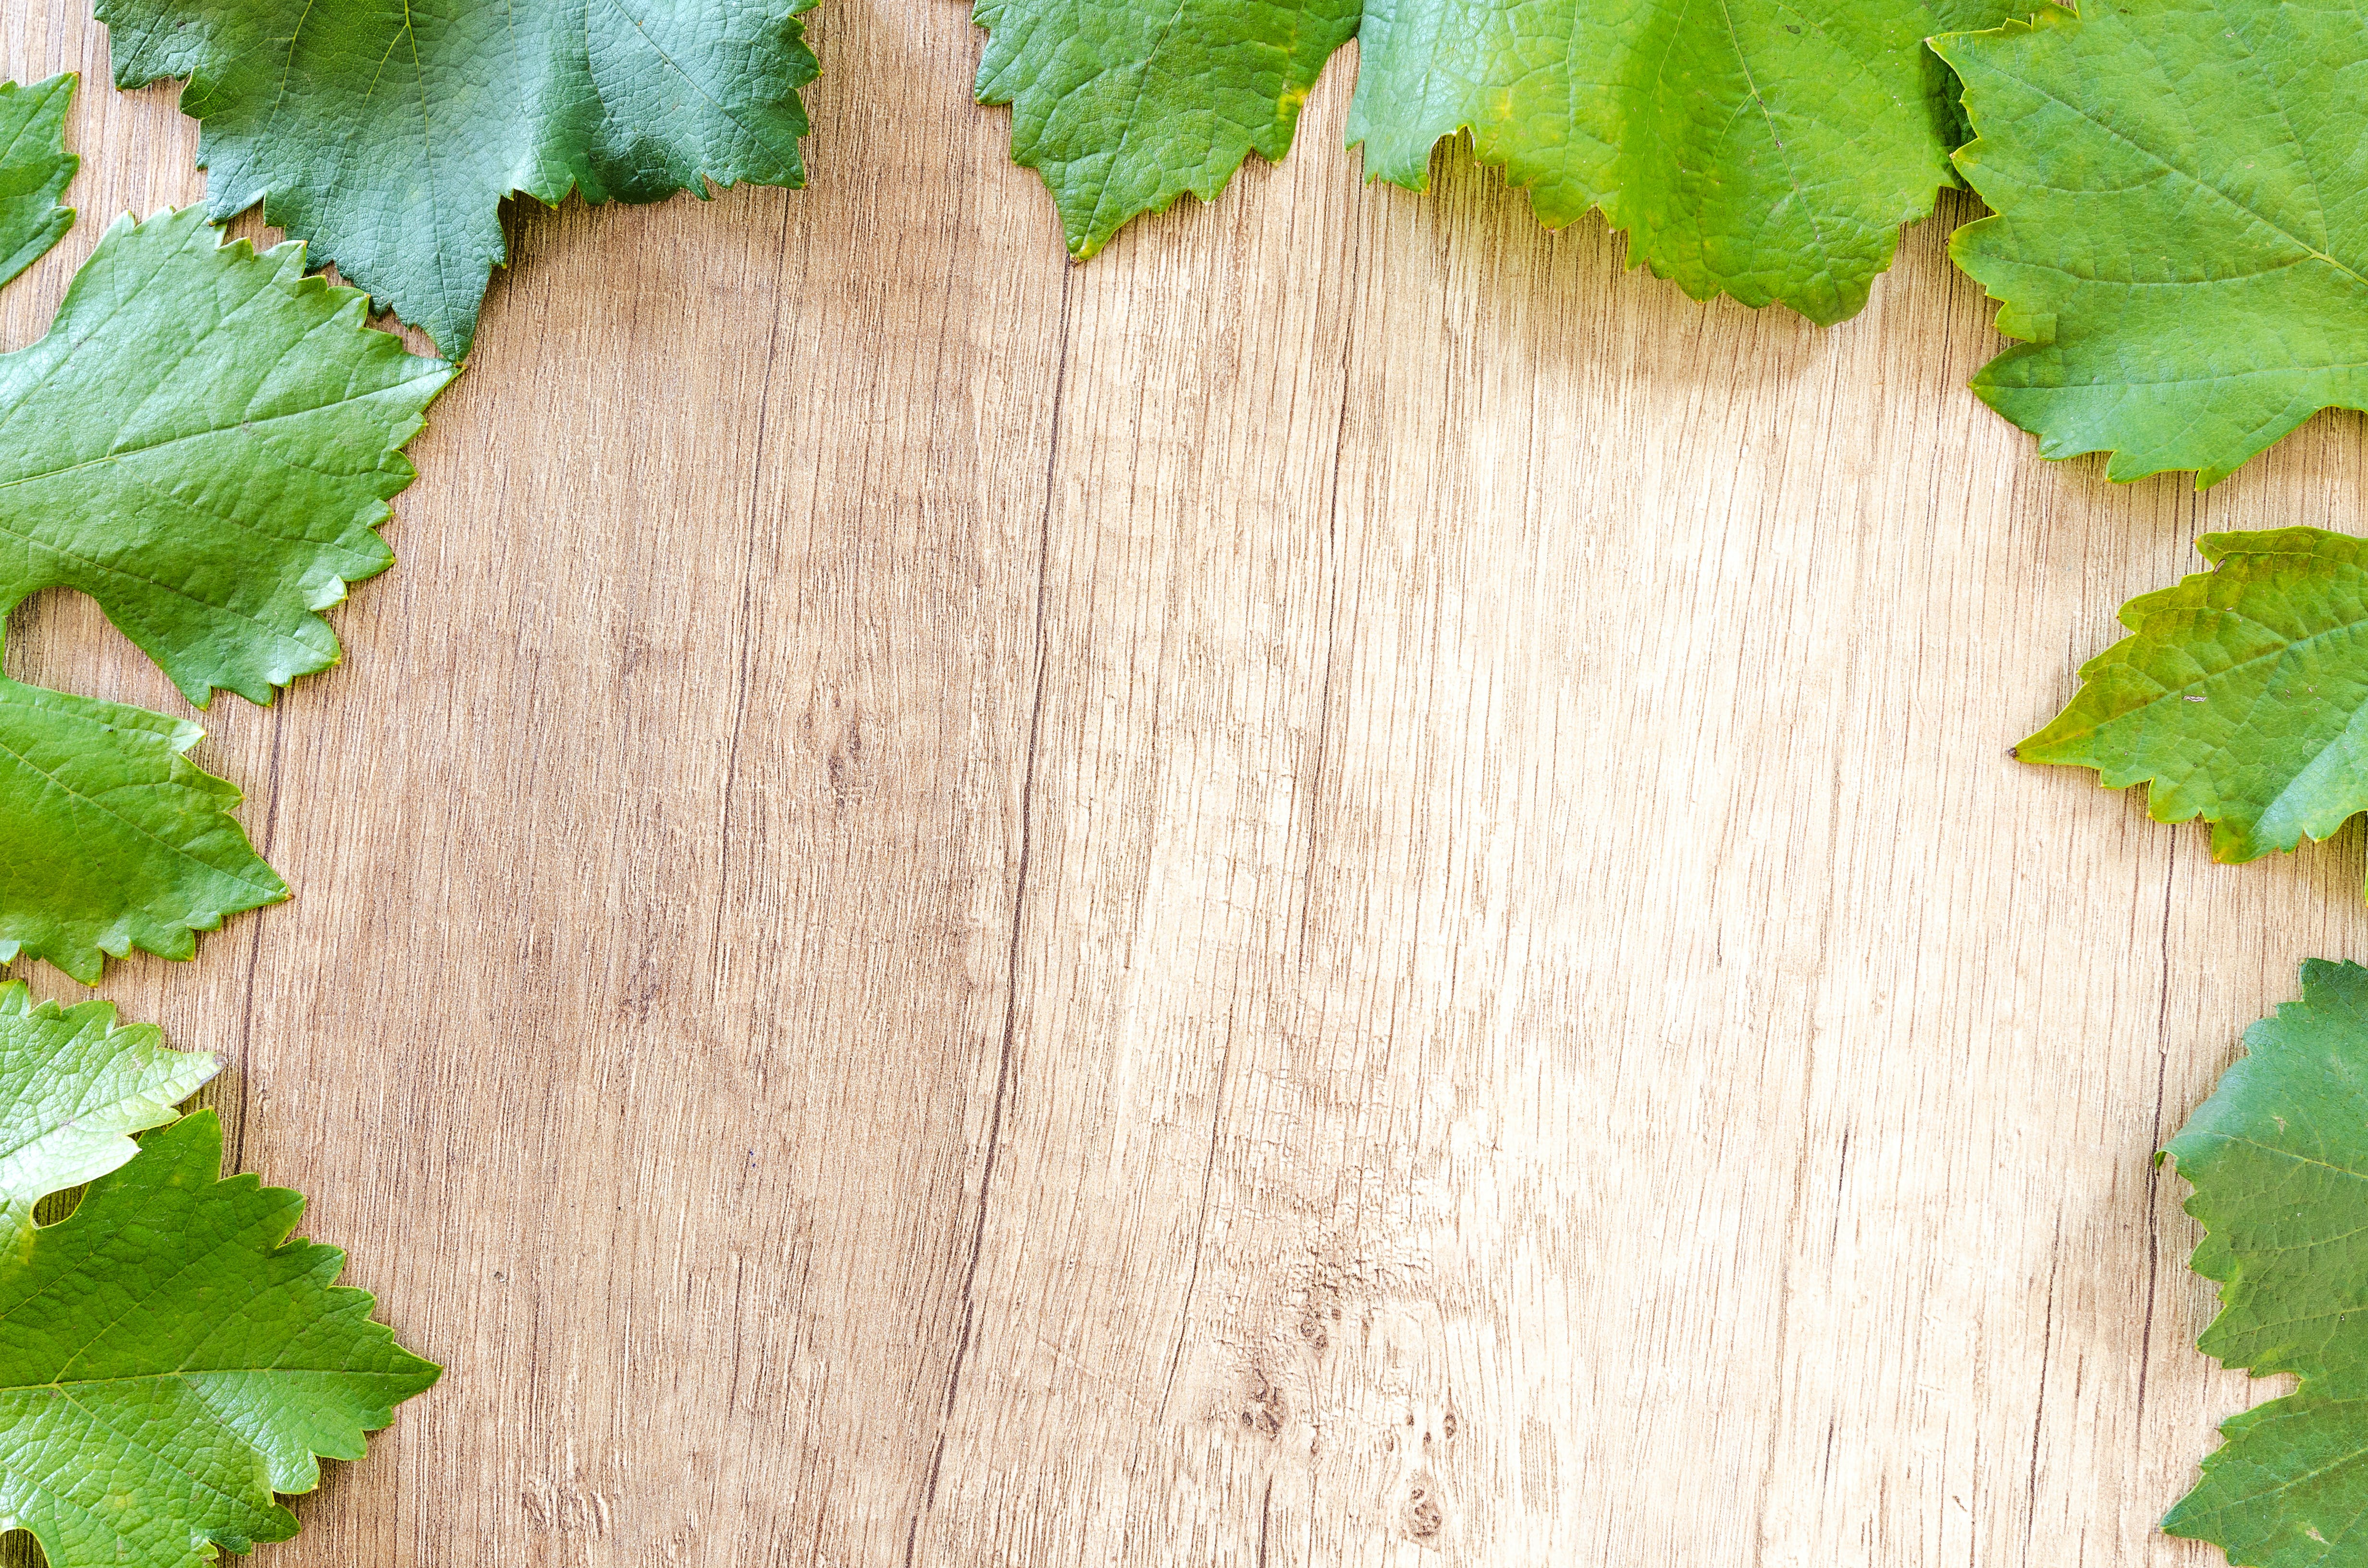 Green Leaves On Wooden Surface